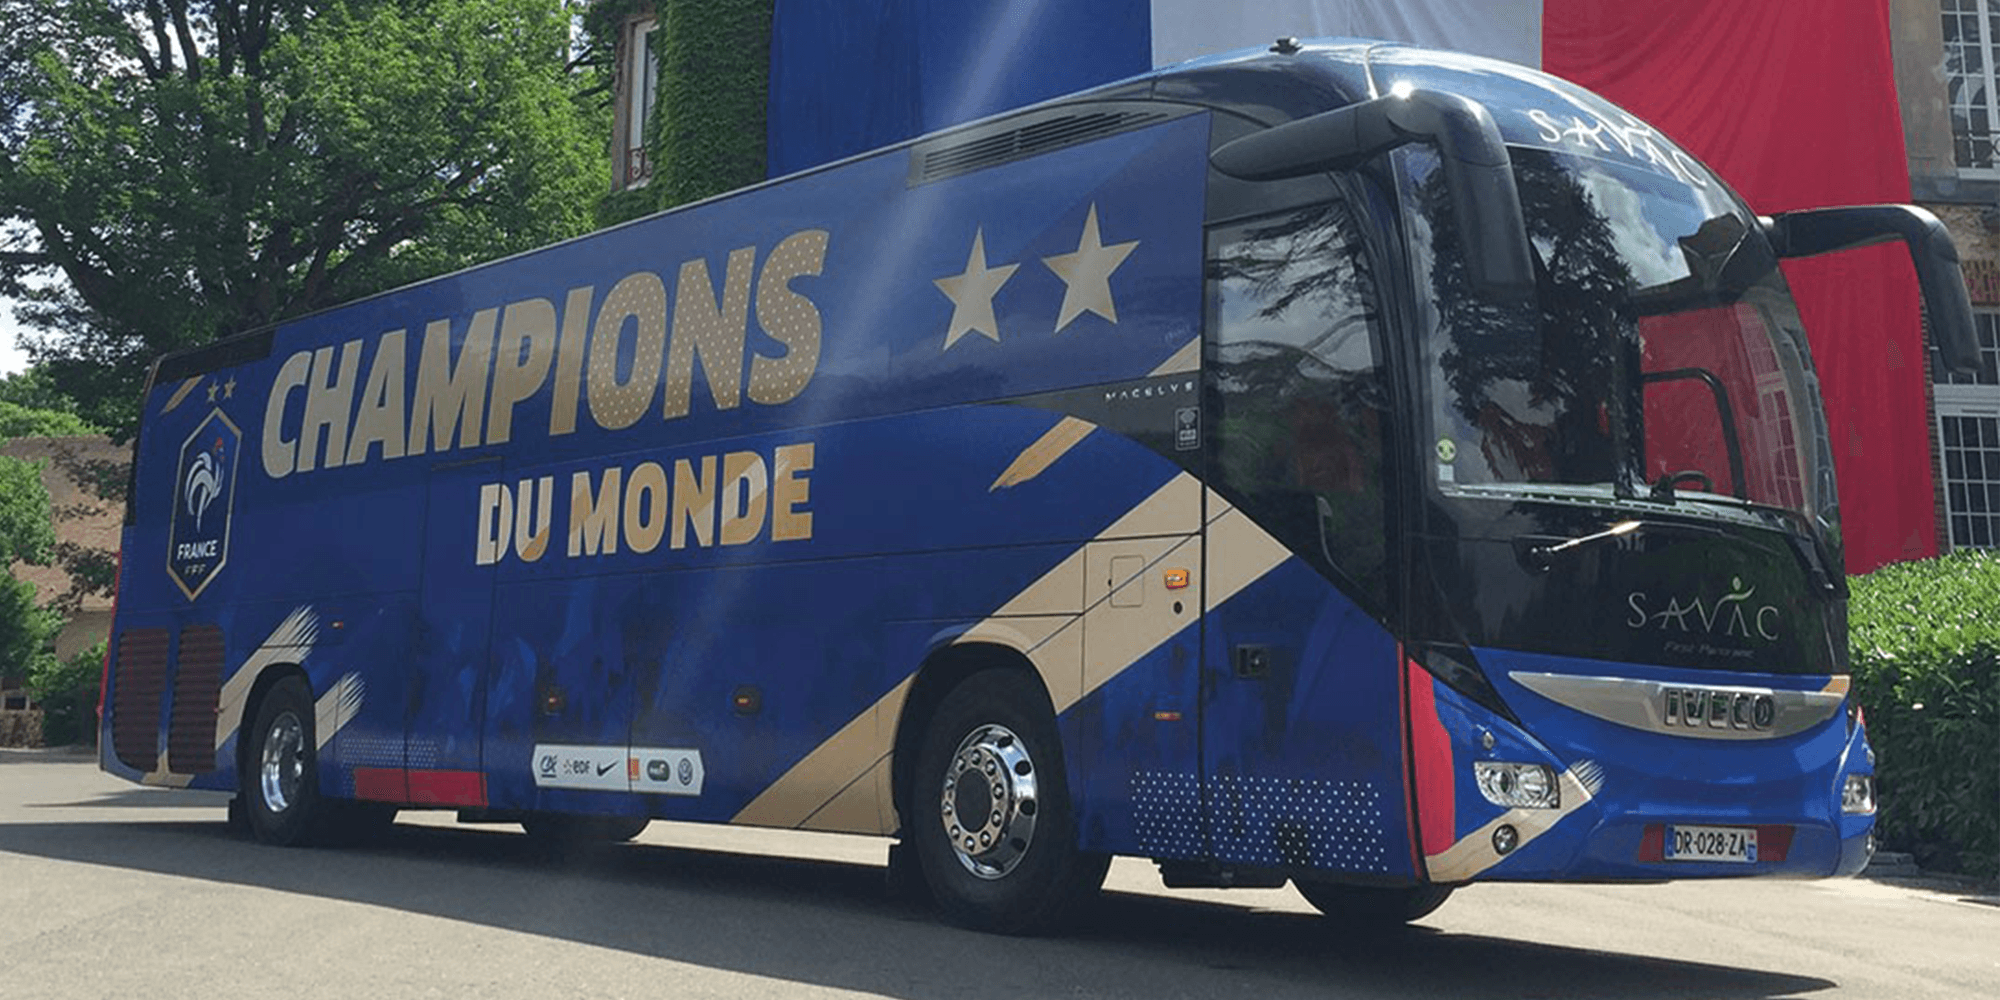 Covering Equipe France Coupe du monde champion